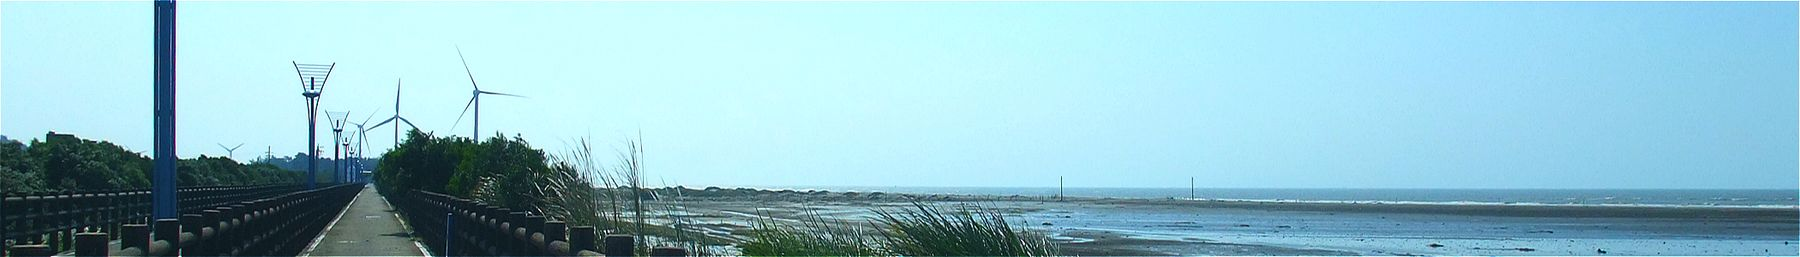 Wikivoyage banner of Hisnchu Top 8 Seascapes Bikeway.jpg